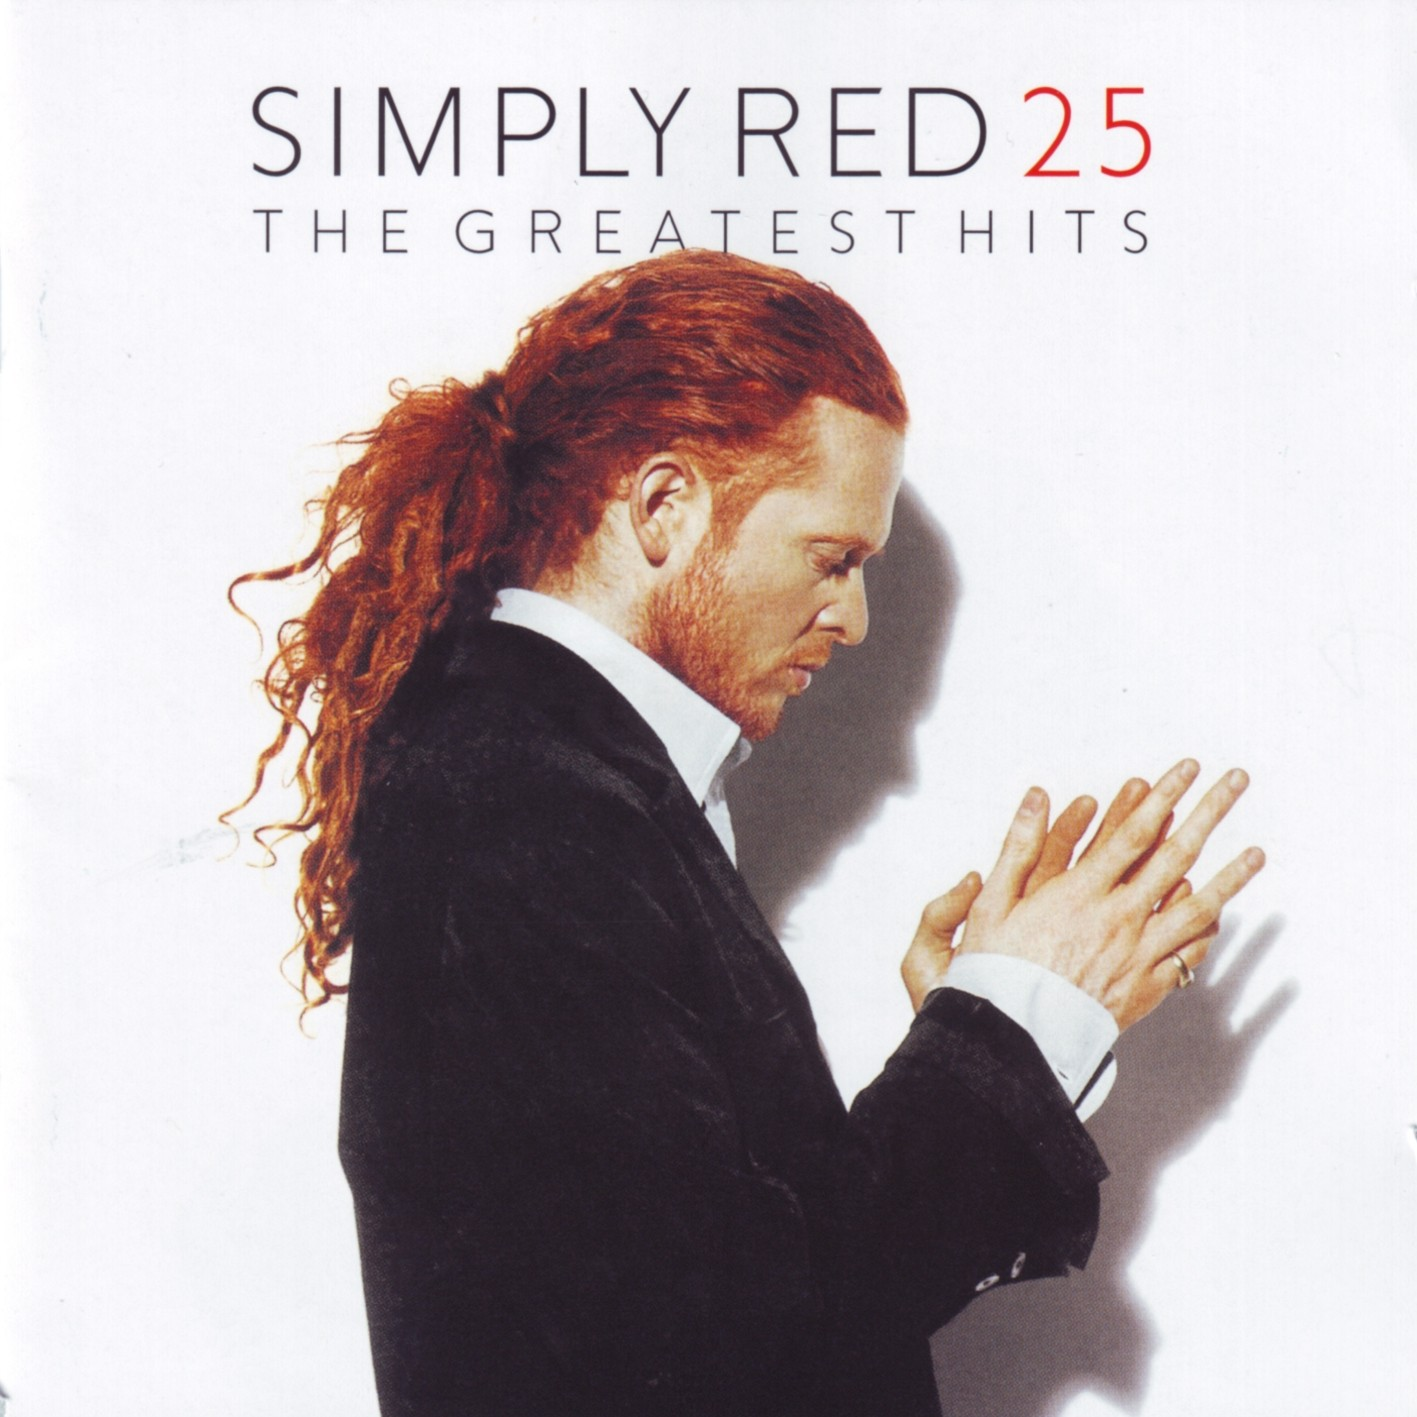 http://1.bp.blogspot.com/_Oi3Xbe8TFoI/S_IQxj2KstI/AAAAAAAAAG0/IVyTOkTF4zE/s1600/%5BAllCDCovers%5D_simply_red_simply_red_25_the_greatest_hits_2008_retail_cd-front.jpg